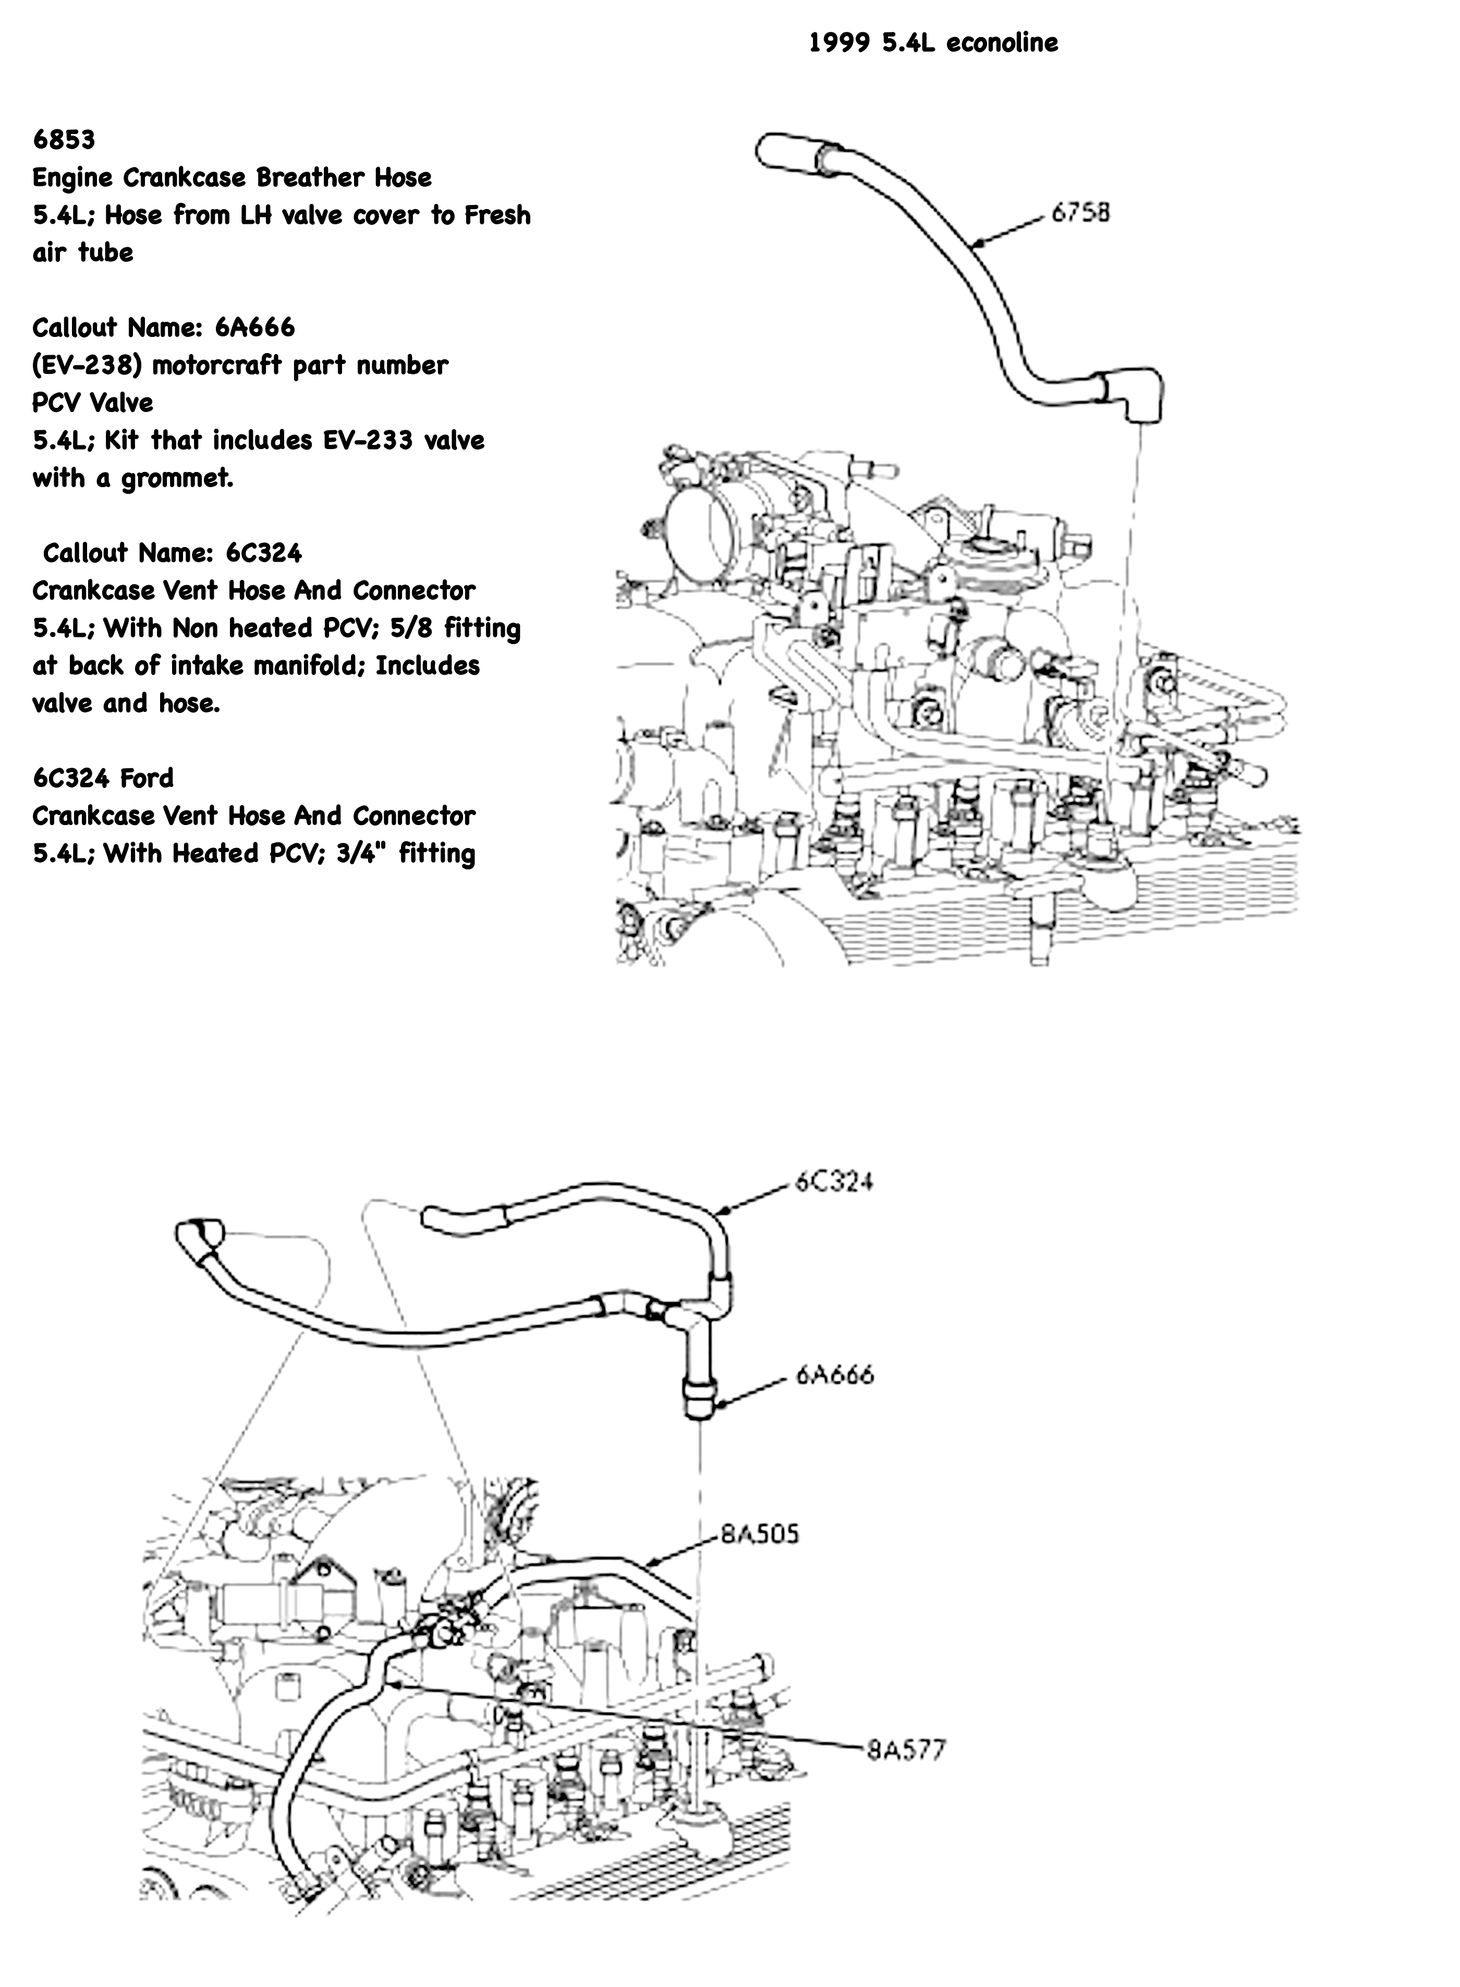 hight resolution of ford triton 5 4l engine diagram wiring diagram ford 5 4 triton engine diagram